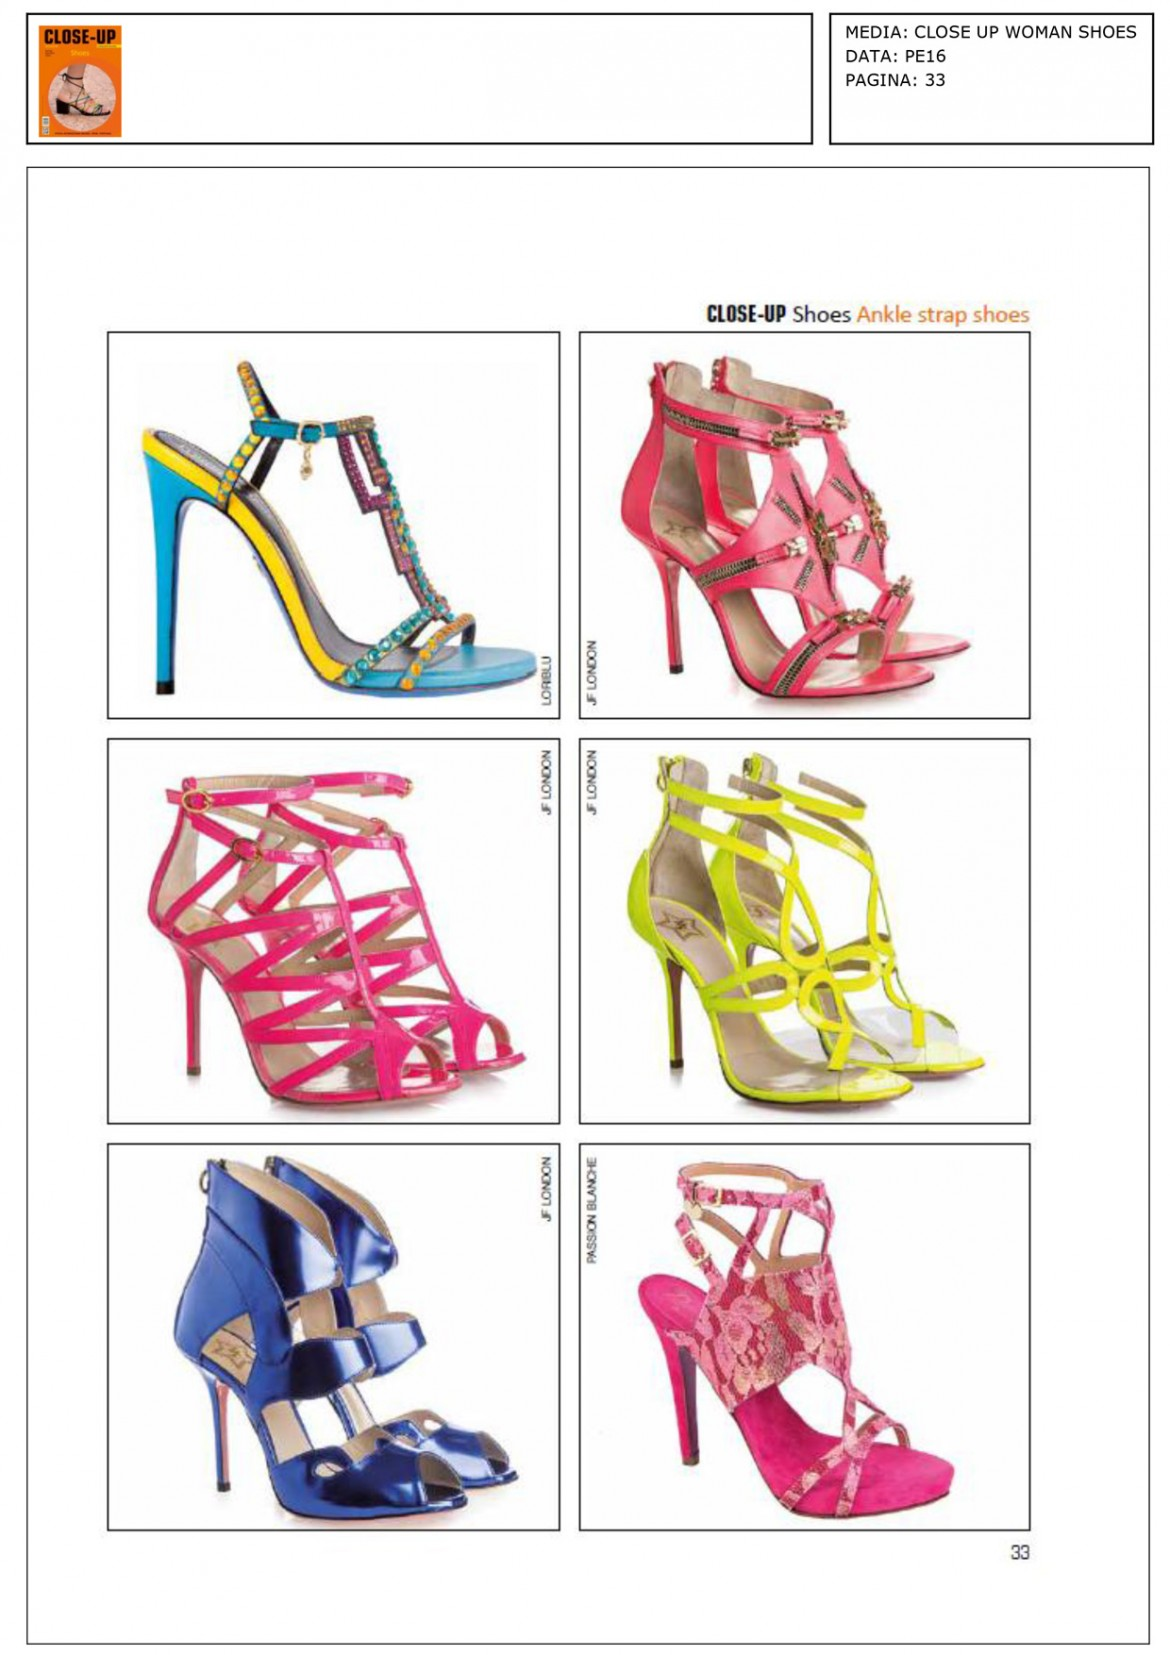 PASSION BLANCHE_CLOSE UP WOMAN SHOES_PE16-1